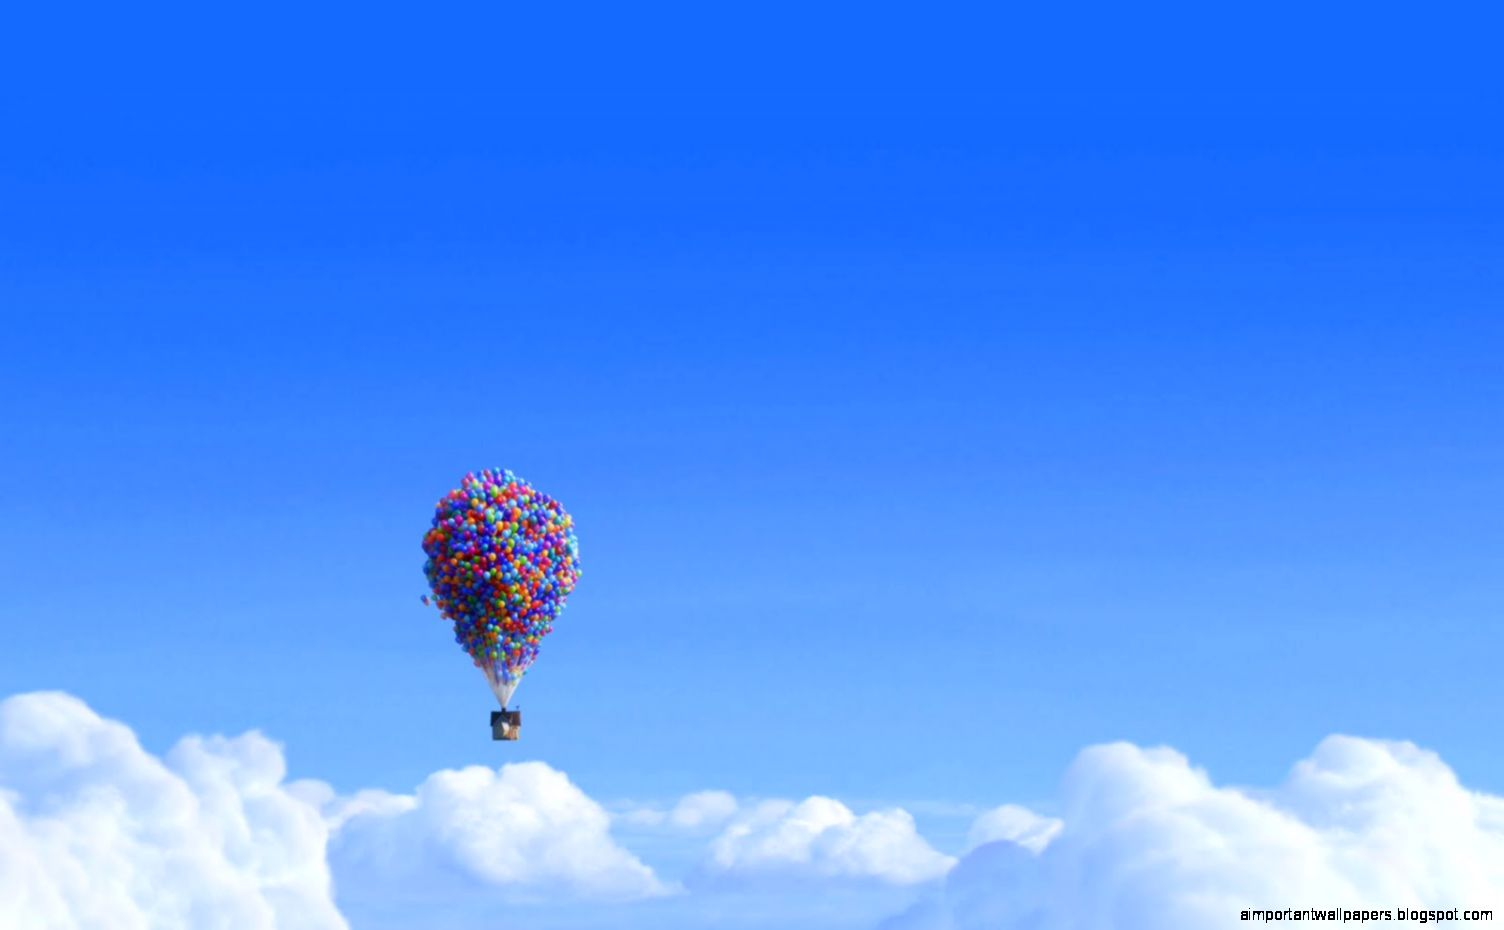 up movie balloons house hd wallpapers important wallpapers